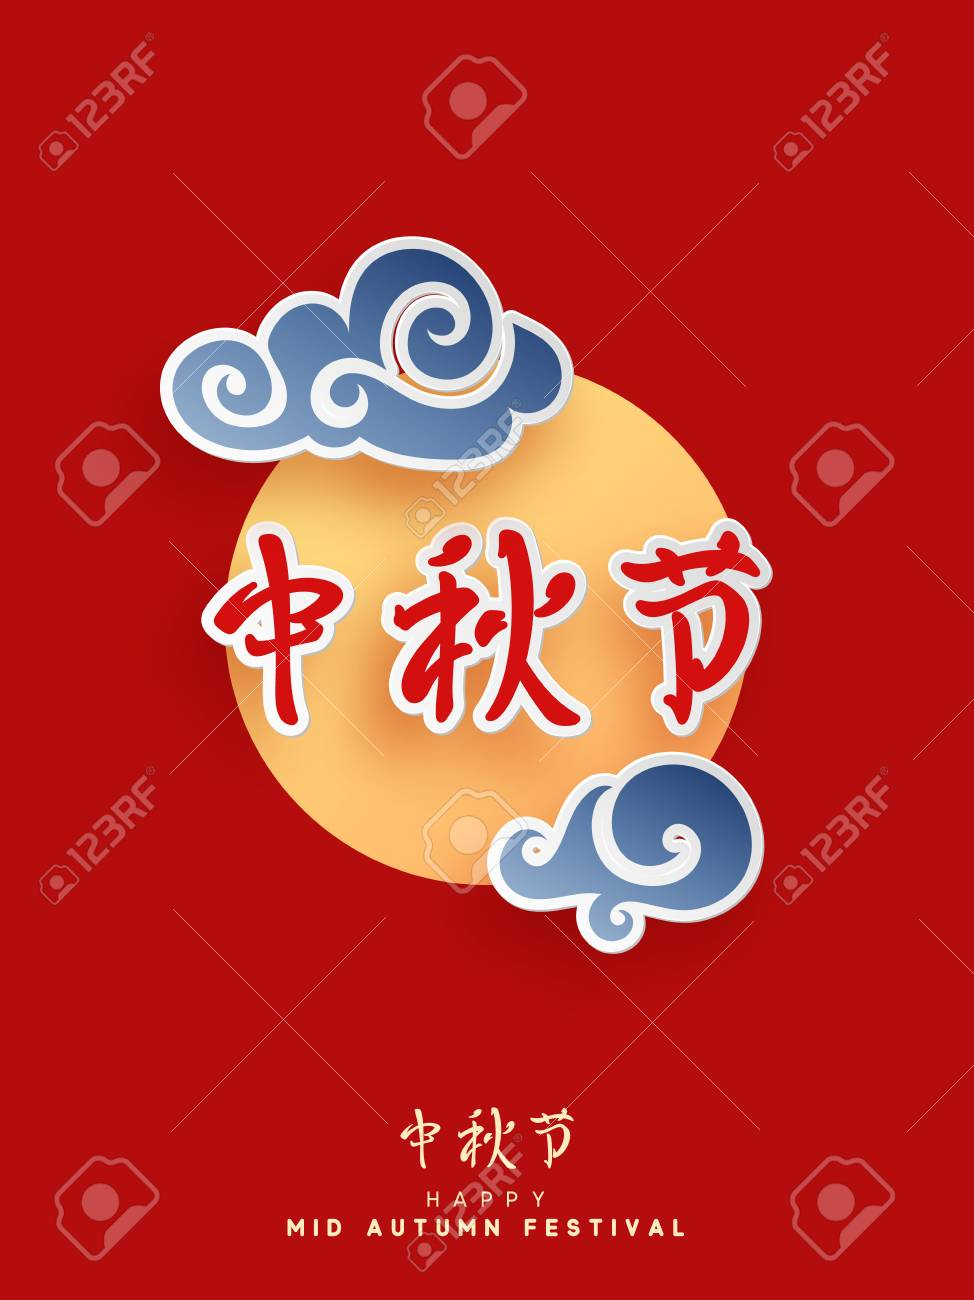 Mid autumn festival lettering chinese hieroglyph greeting card mid autumn festival lettering chinese hieroglyph greeting card illustration moon with clouds stock vector m4hsunfo